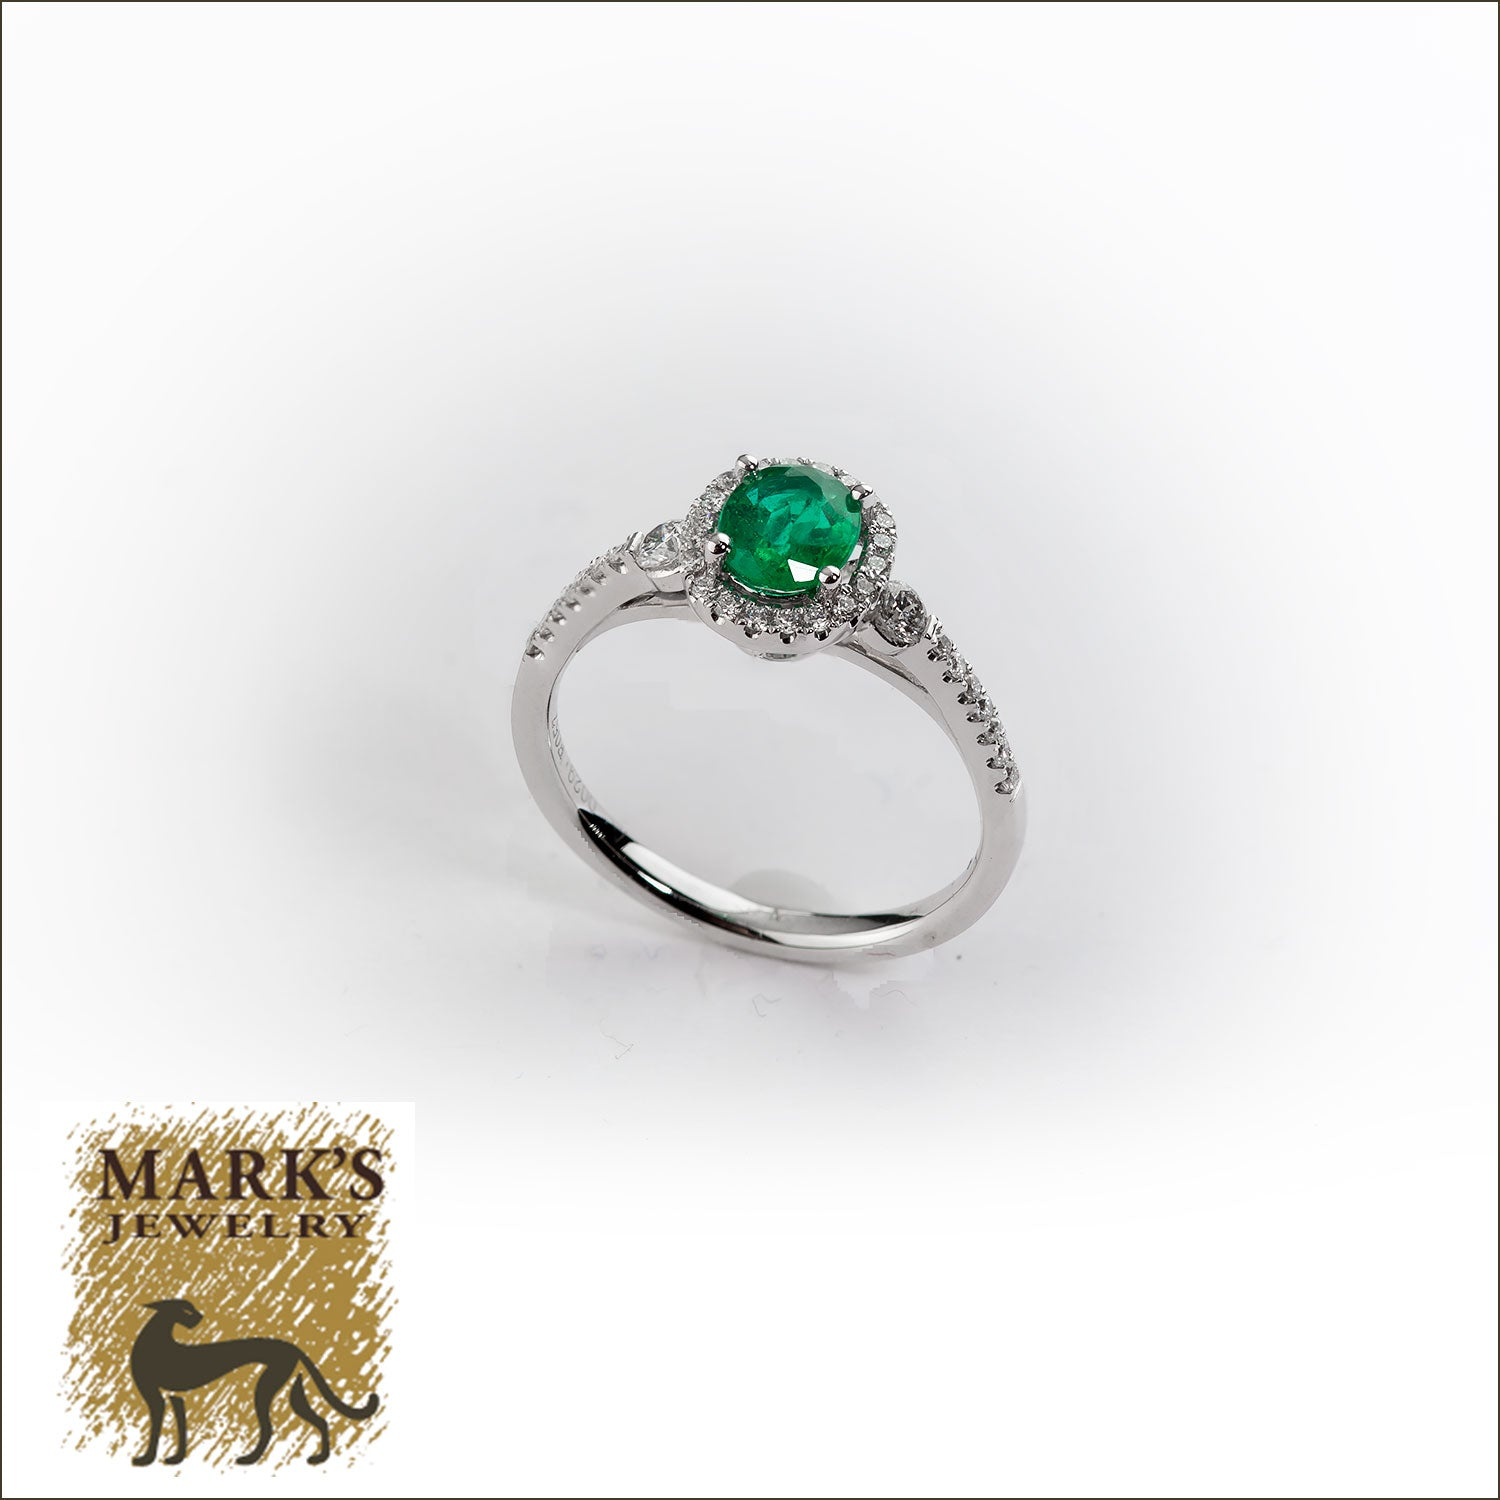 14K White Gold Diamond and Oval Emerald Ring,